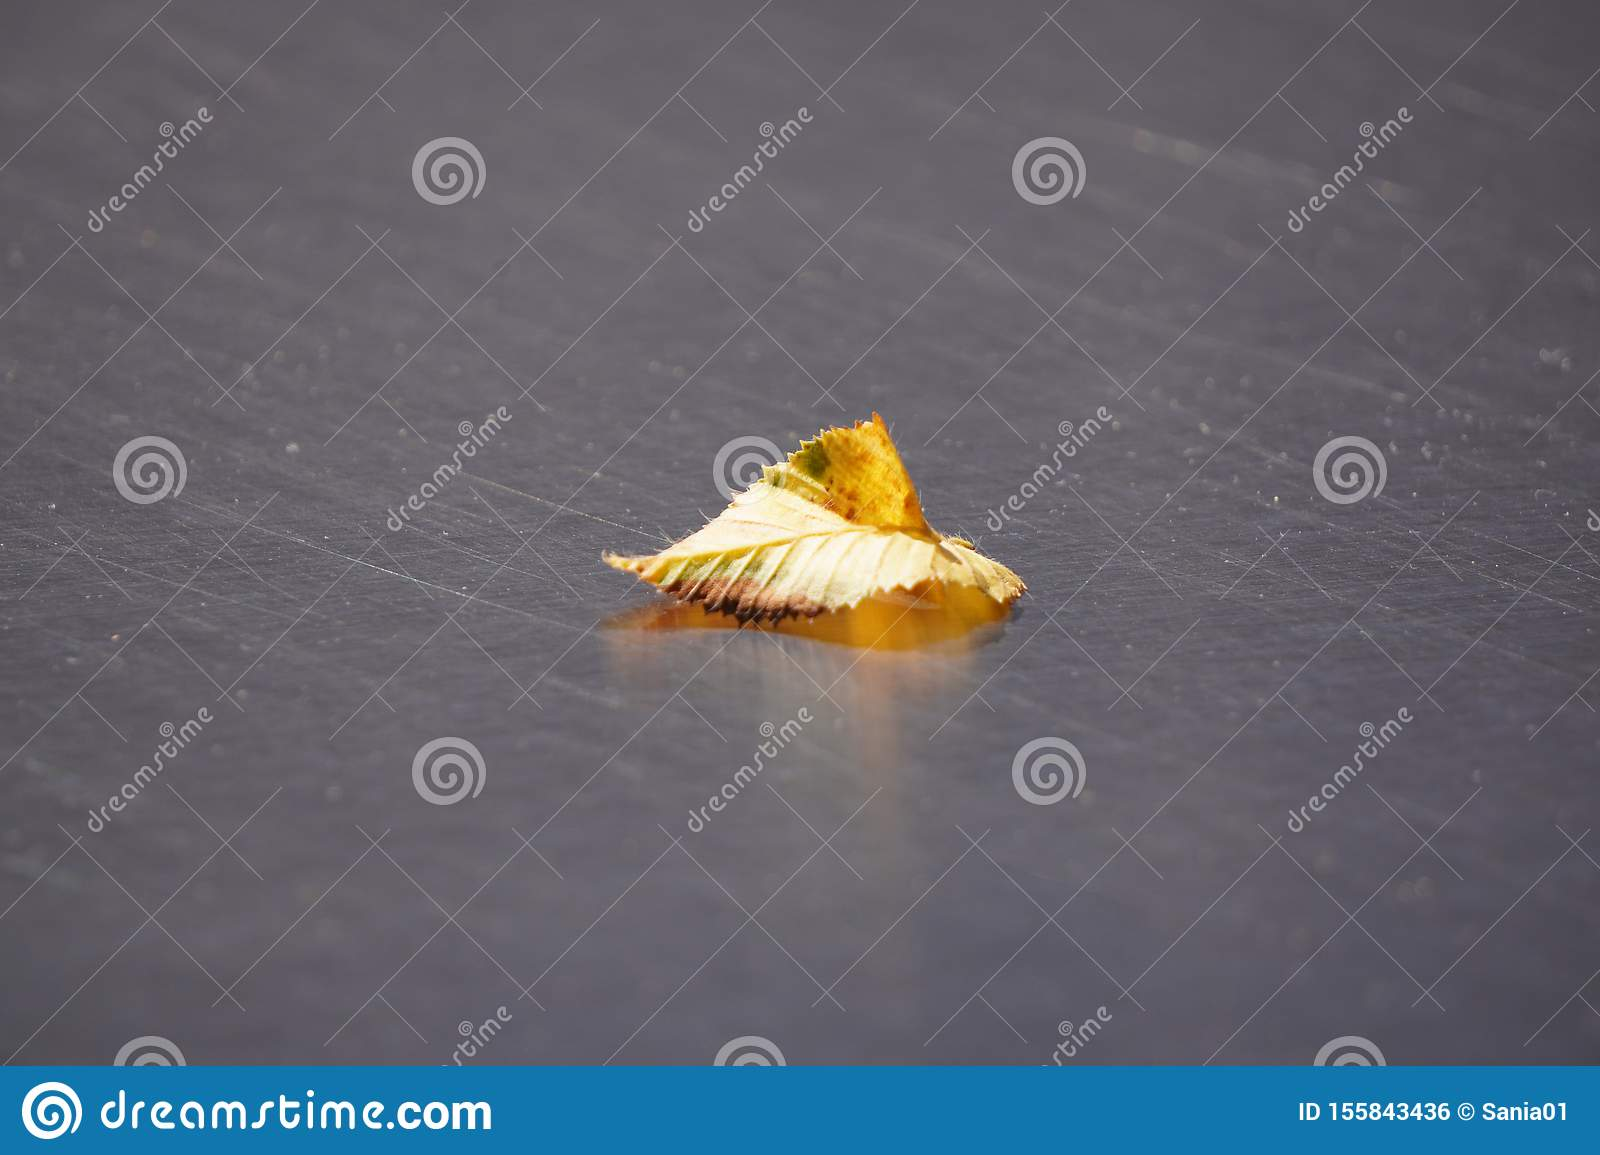 One yellow fallen leaf lies on the smooth surface of the table. the approach of autumn. withering nature before winter